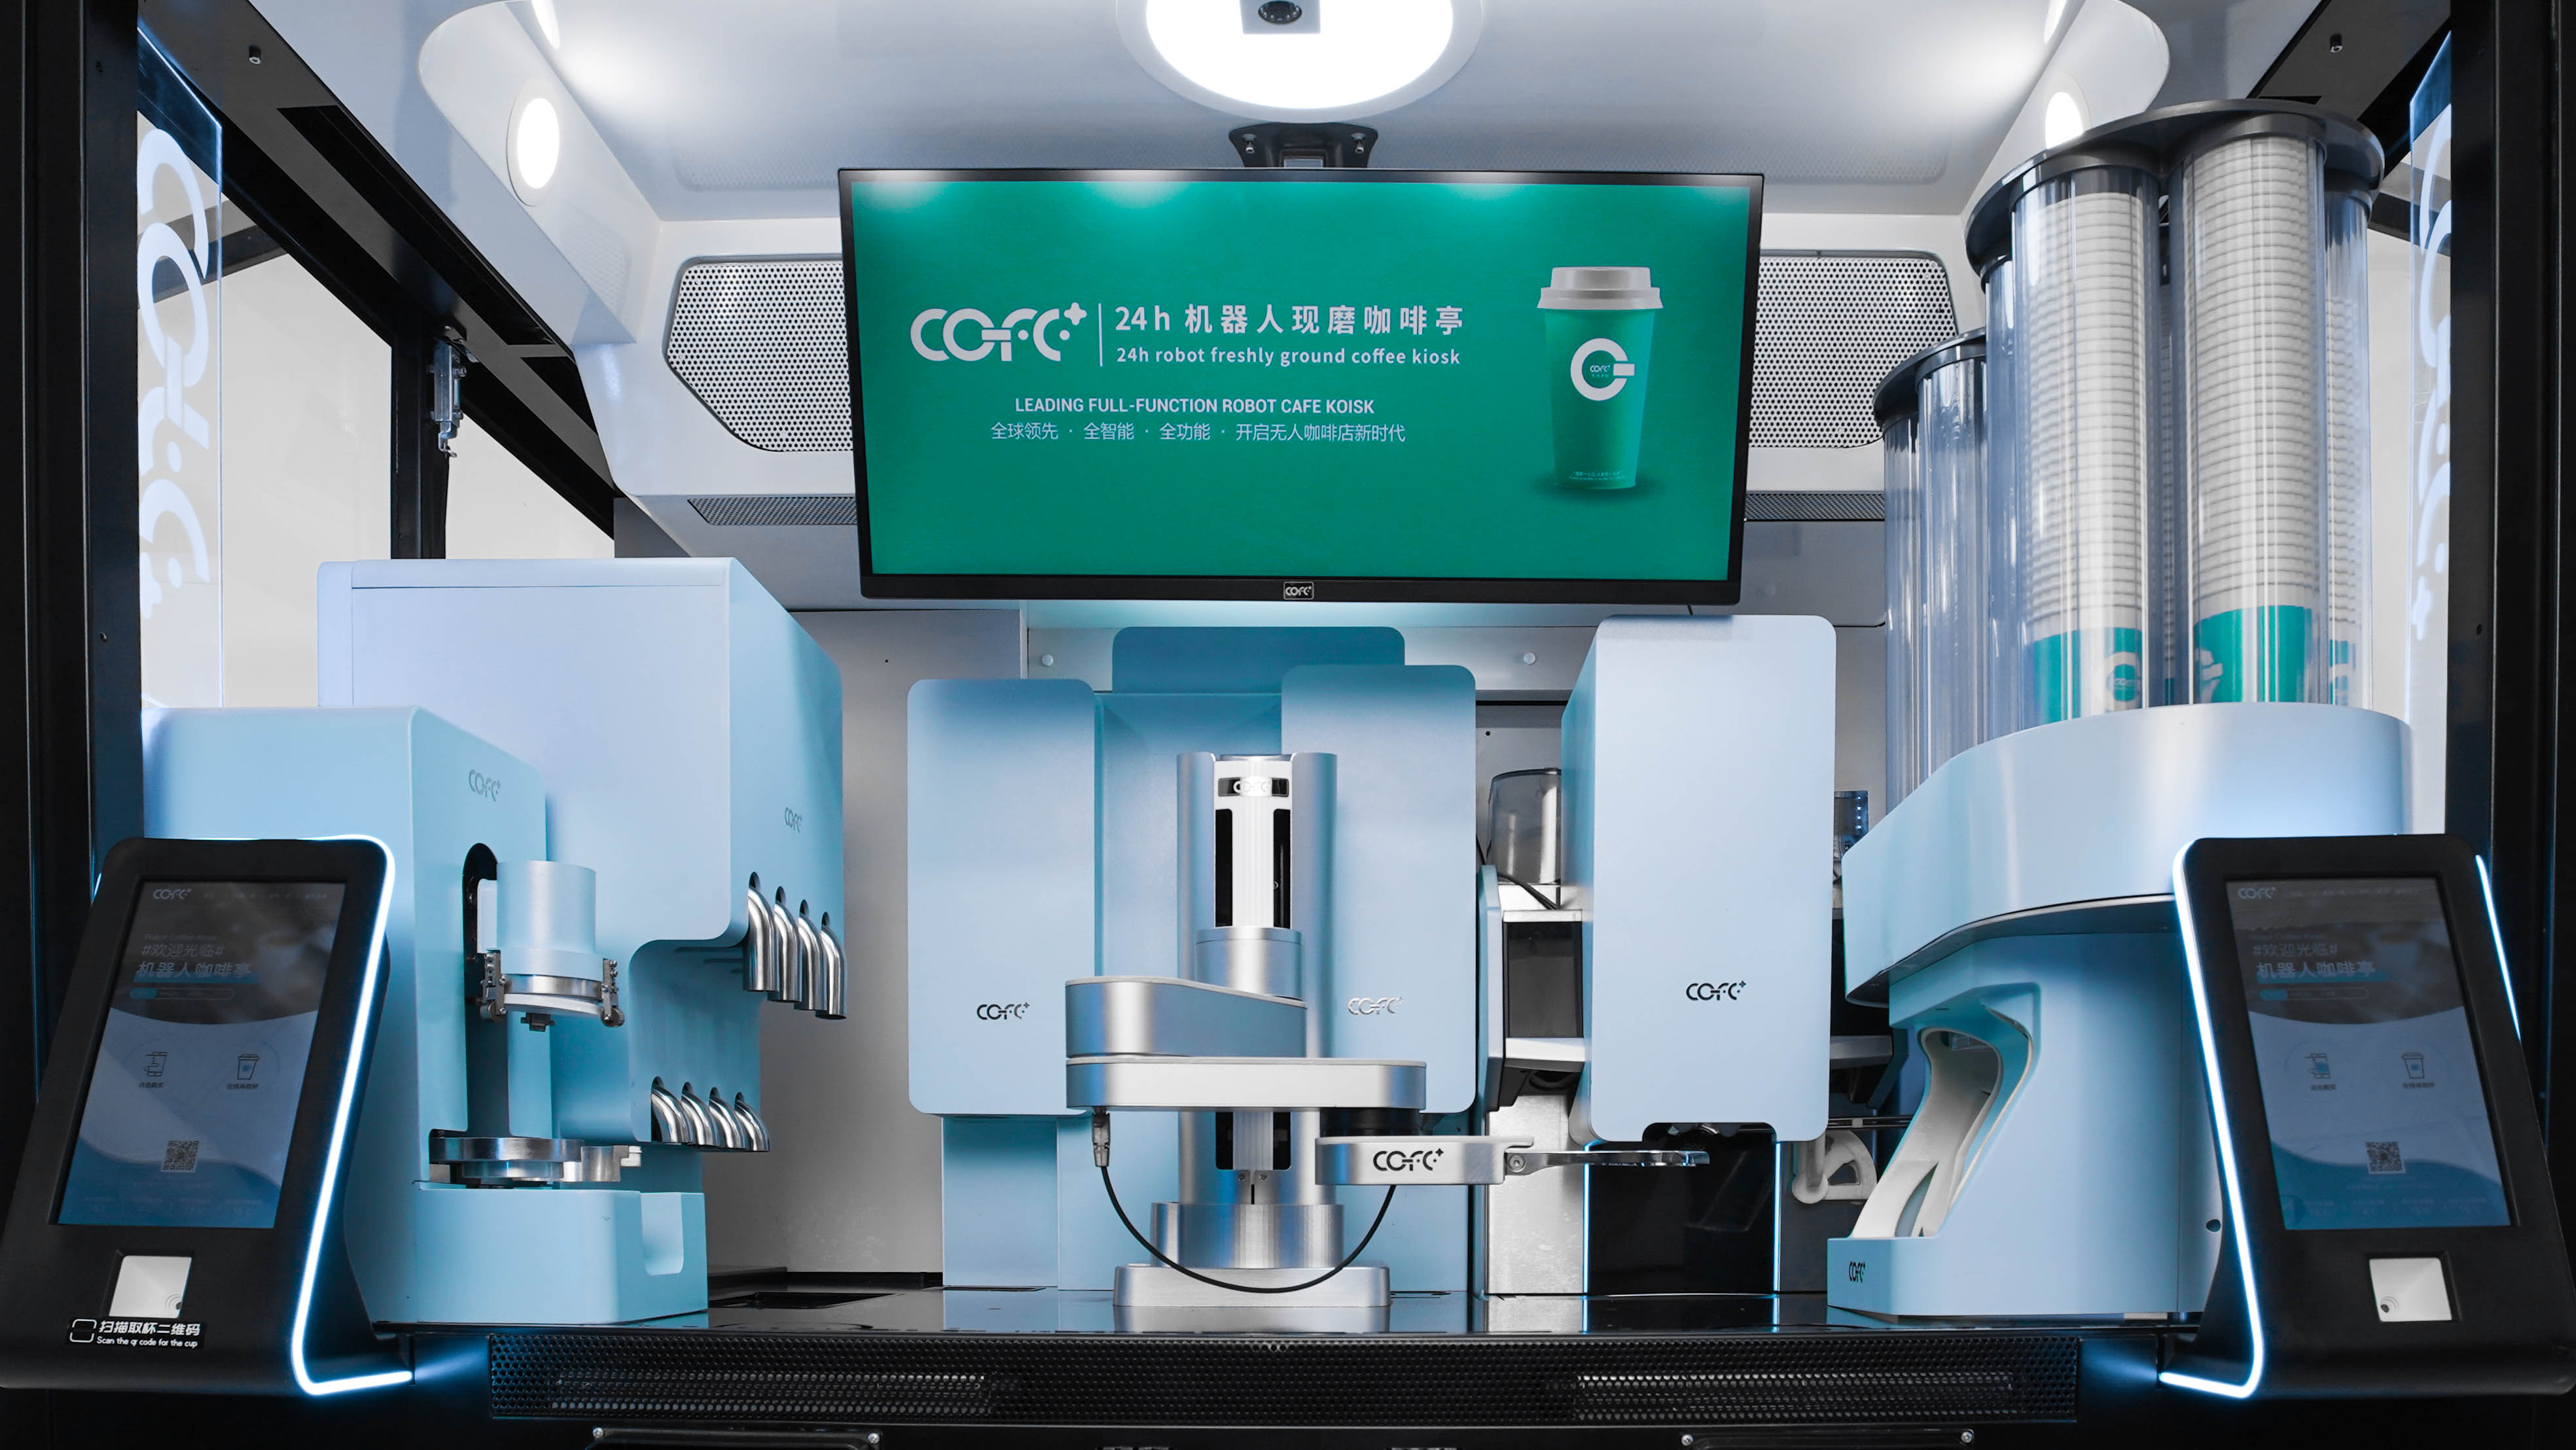 Building a post-epidemic smart life, the era of coffee robots may be closer than imagined